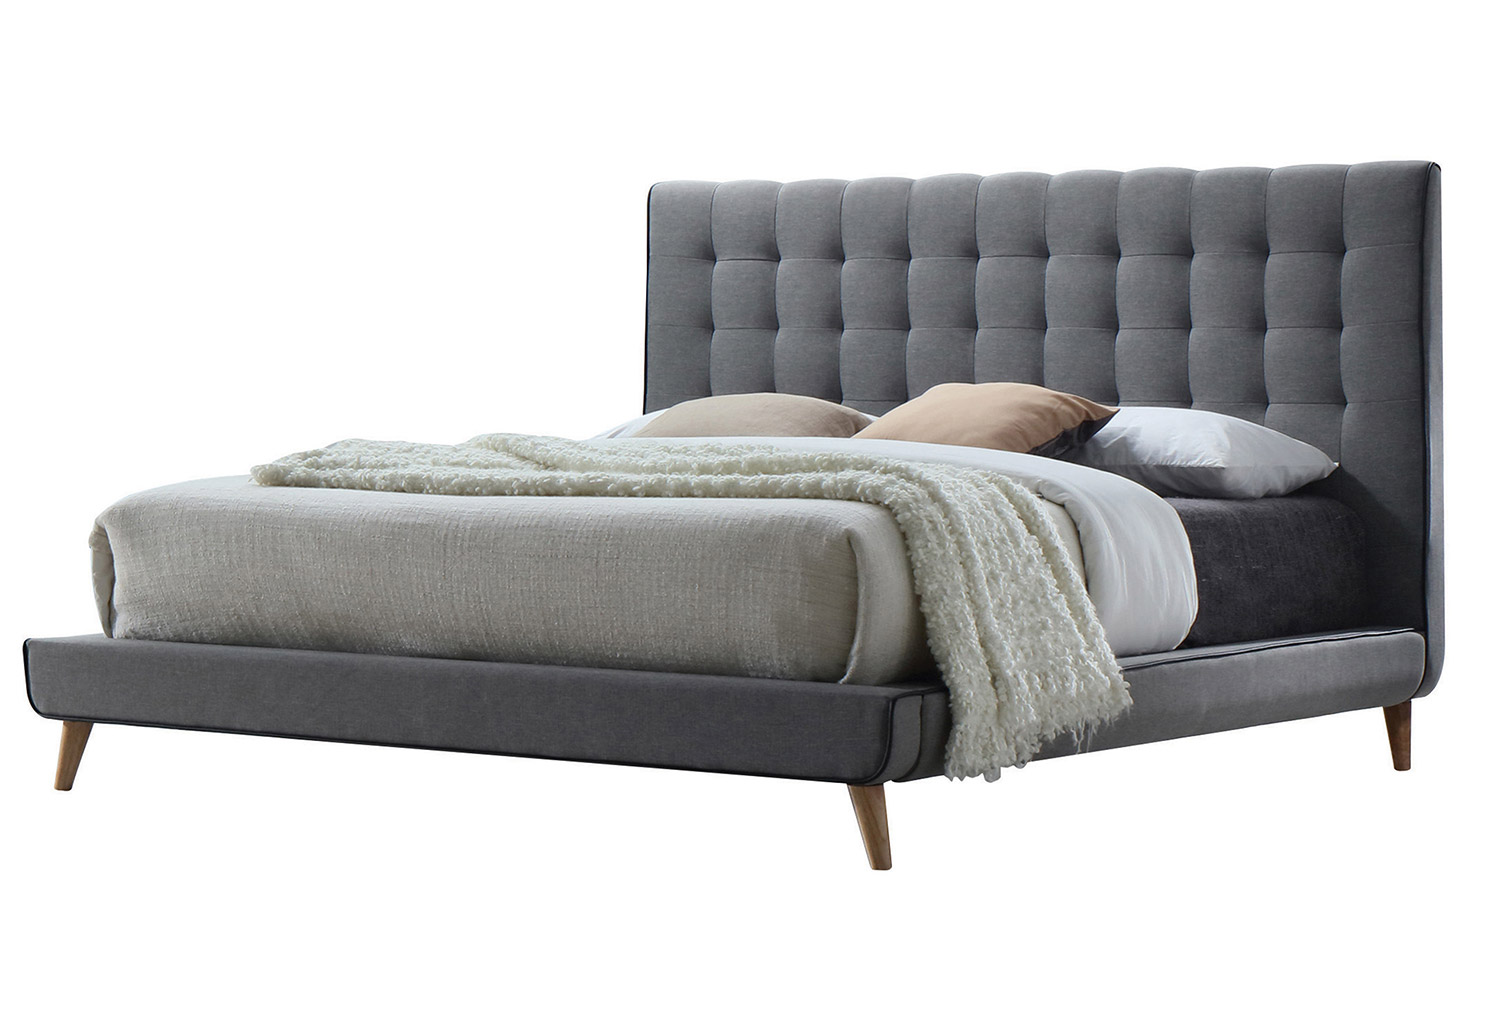 Acme Valda Bed - Light Gray Fabric